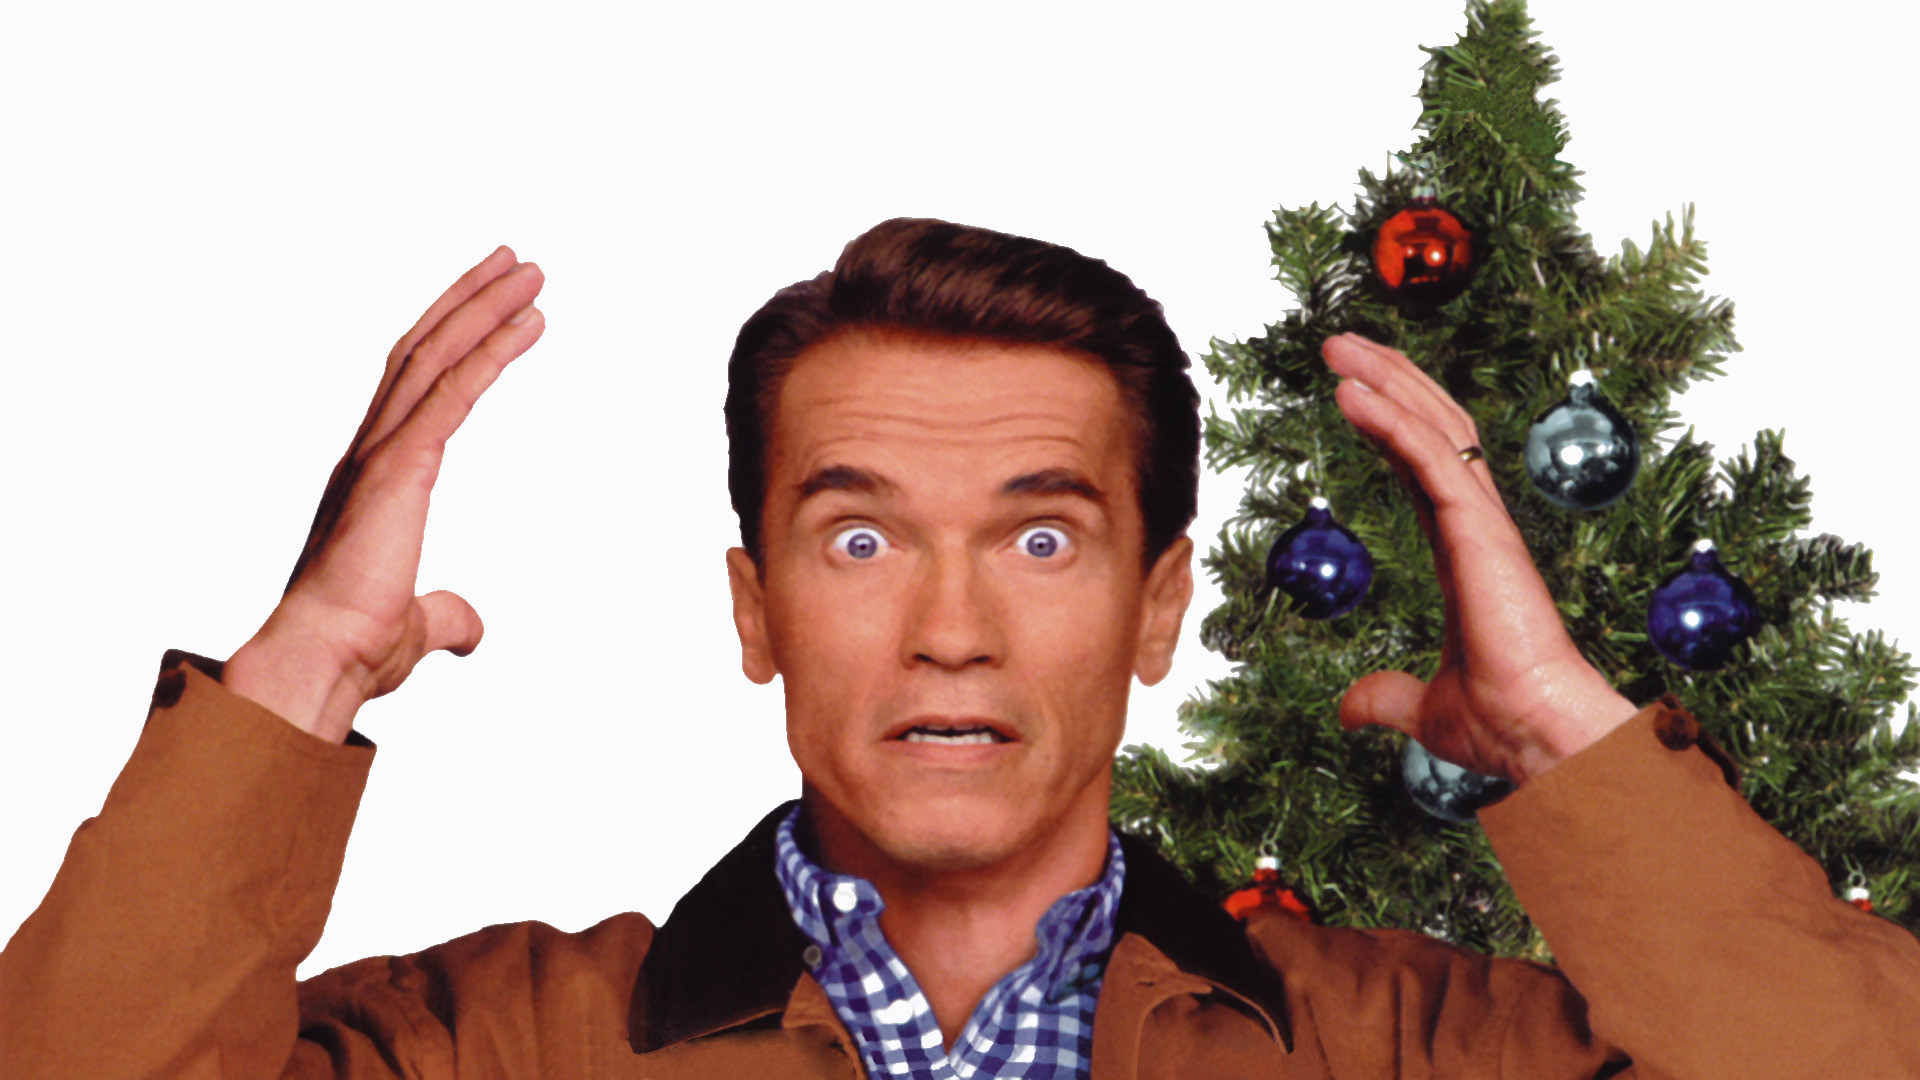 Image of Arnold Schwarzenegger from the movie Jingle All the Way